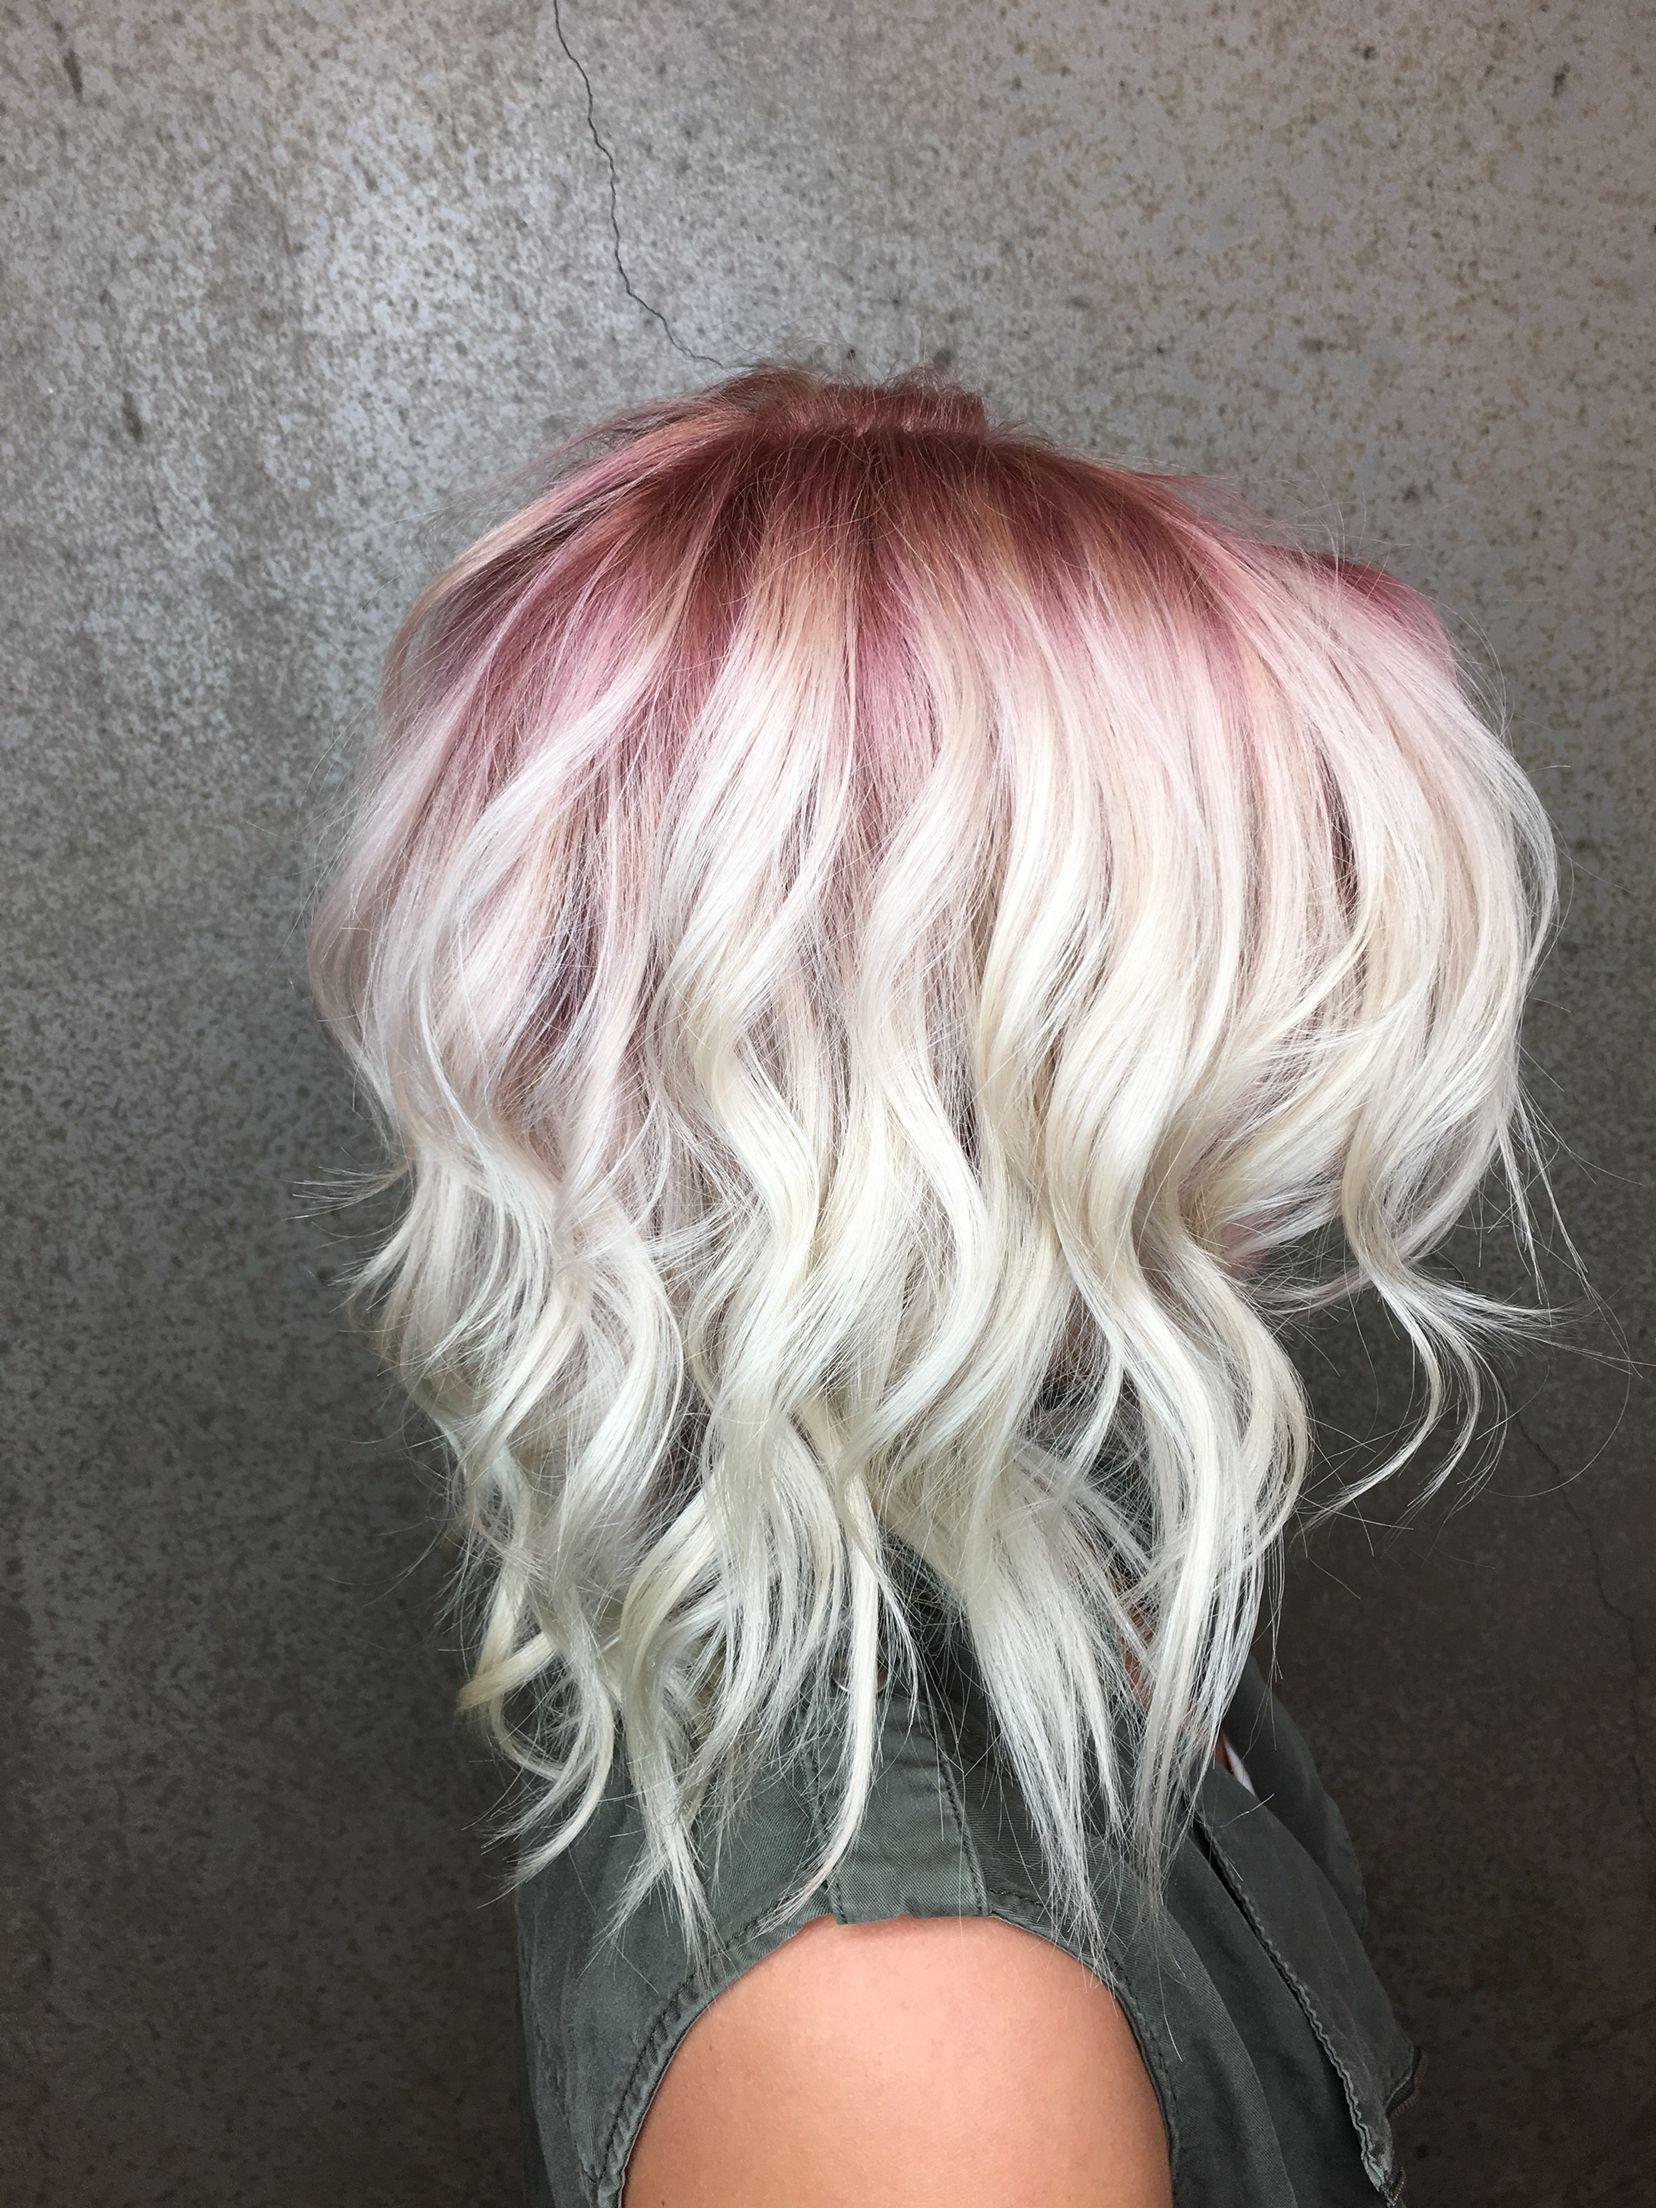 New Imma Just Put Hair With Health Health Hair Blonde Ideas With Pictures